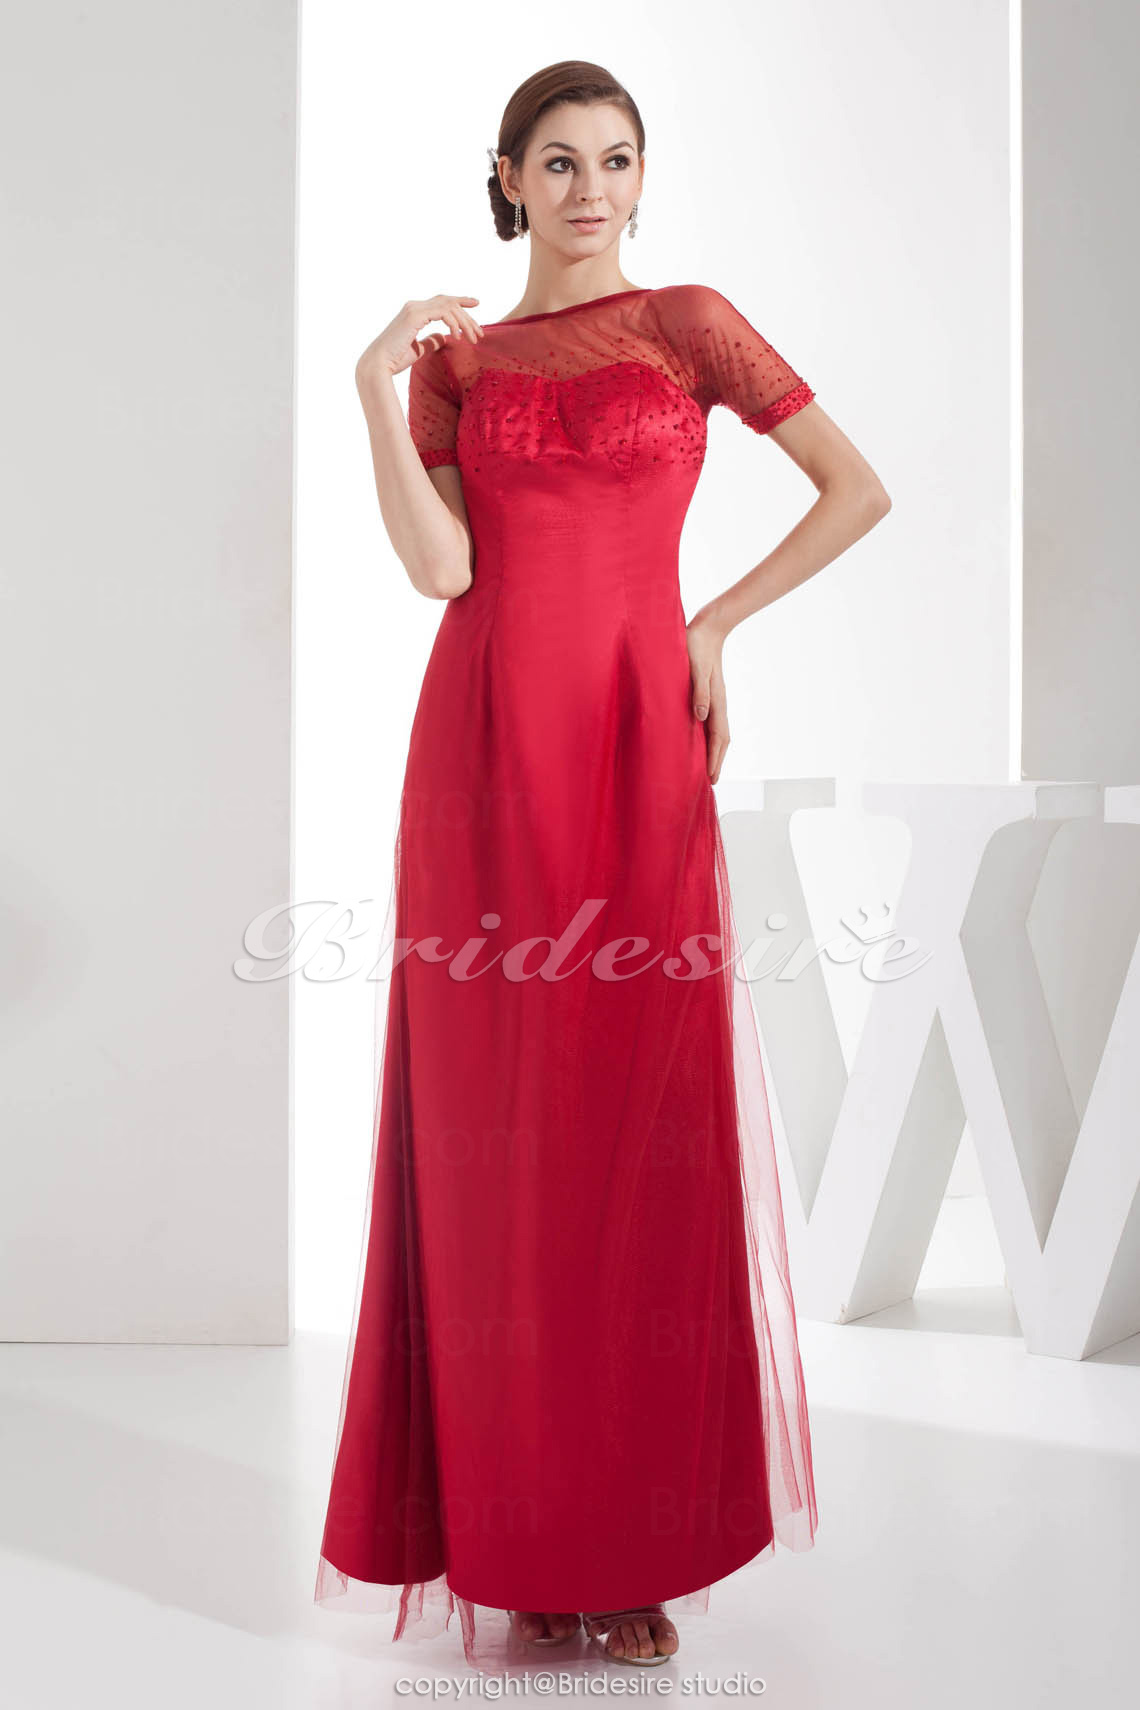 Sheath/Column Bateau Floor-length Short Sleeve Satin Chiffon Mother of the Bride Dress